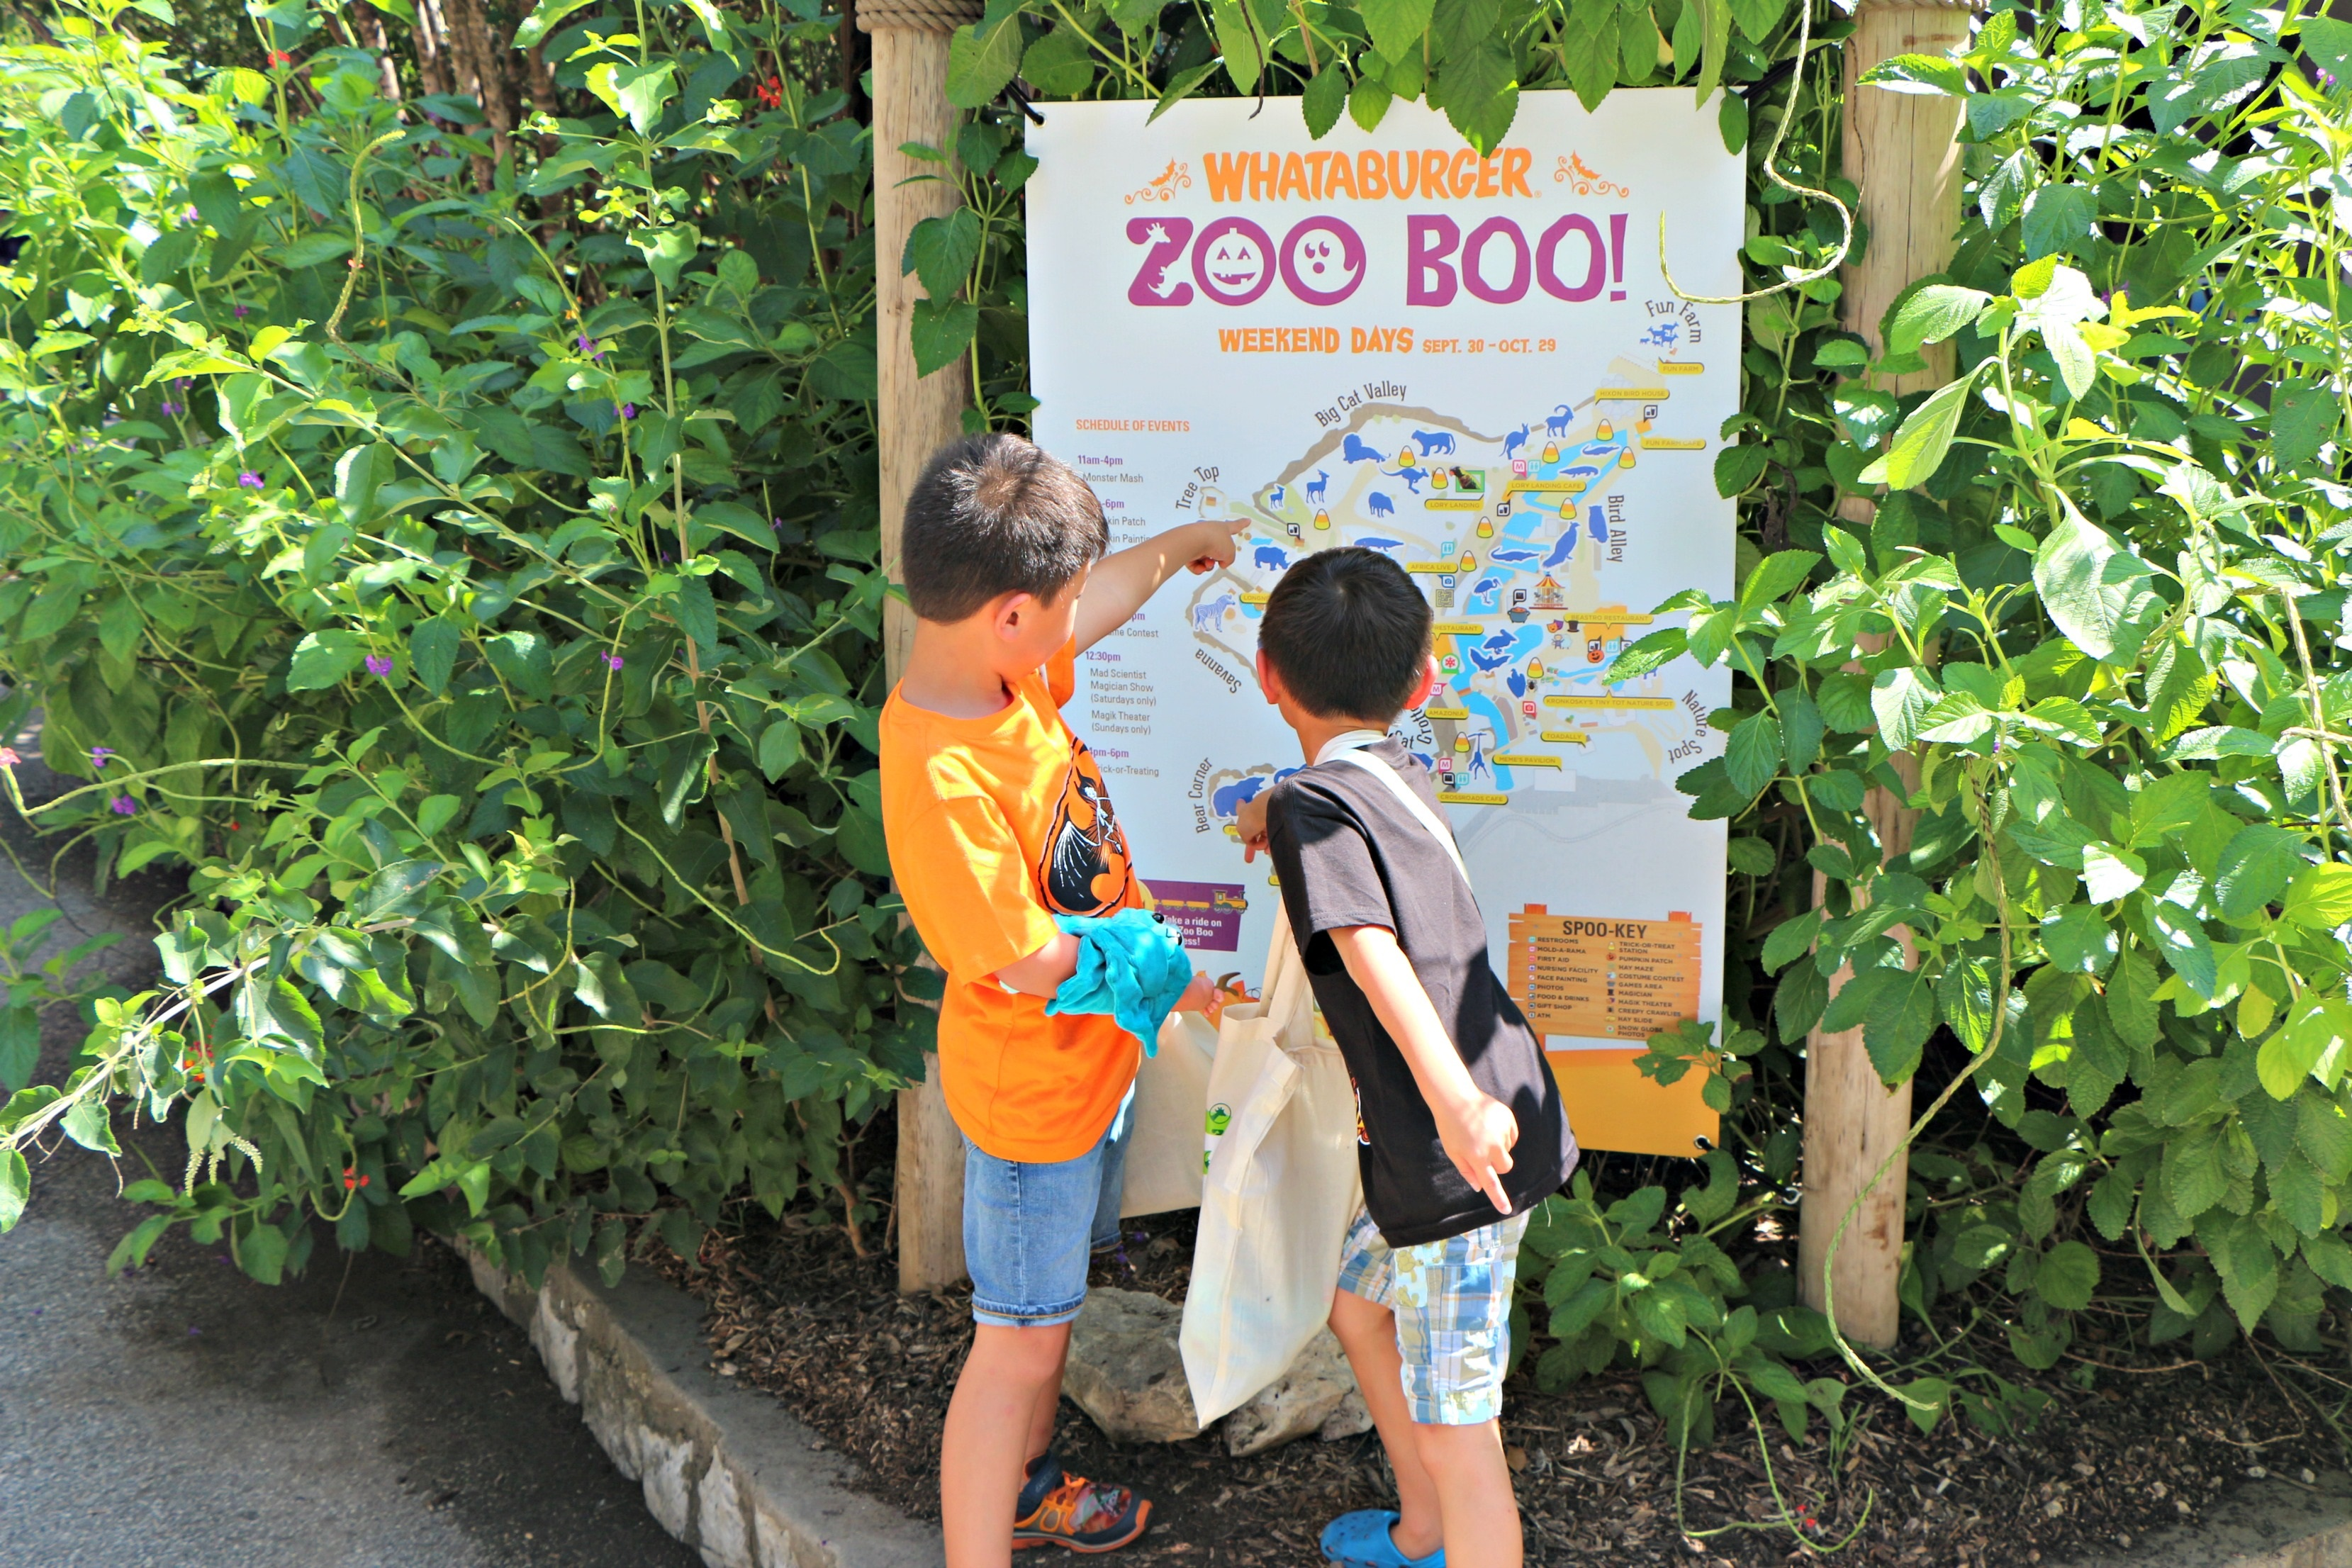 Reasons to check out Zoo Boo at the San Antonio Zoo|Ripped Jeans and Bifocals